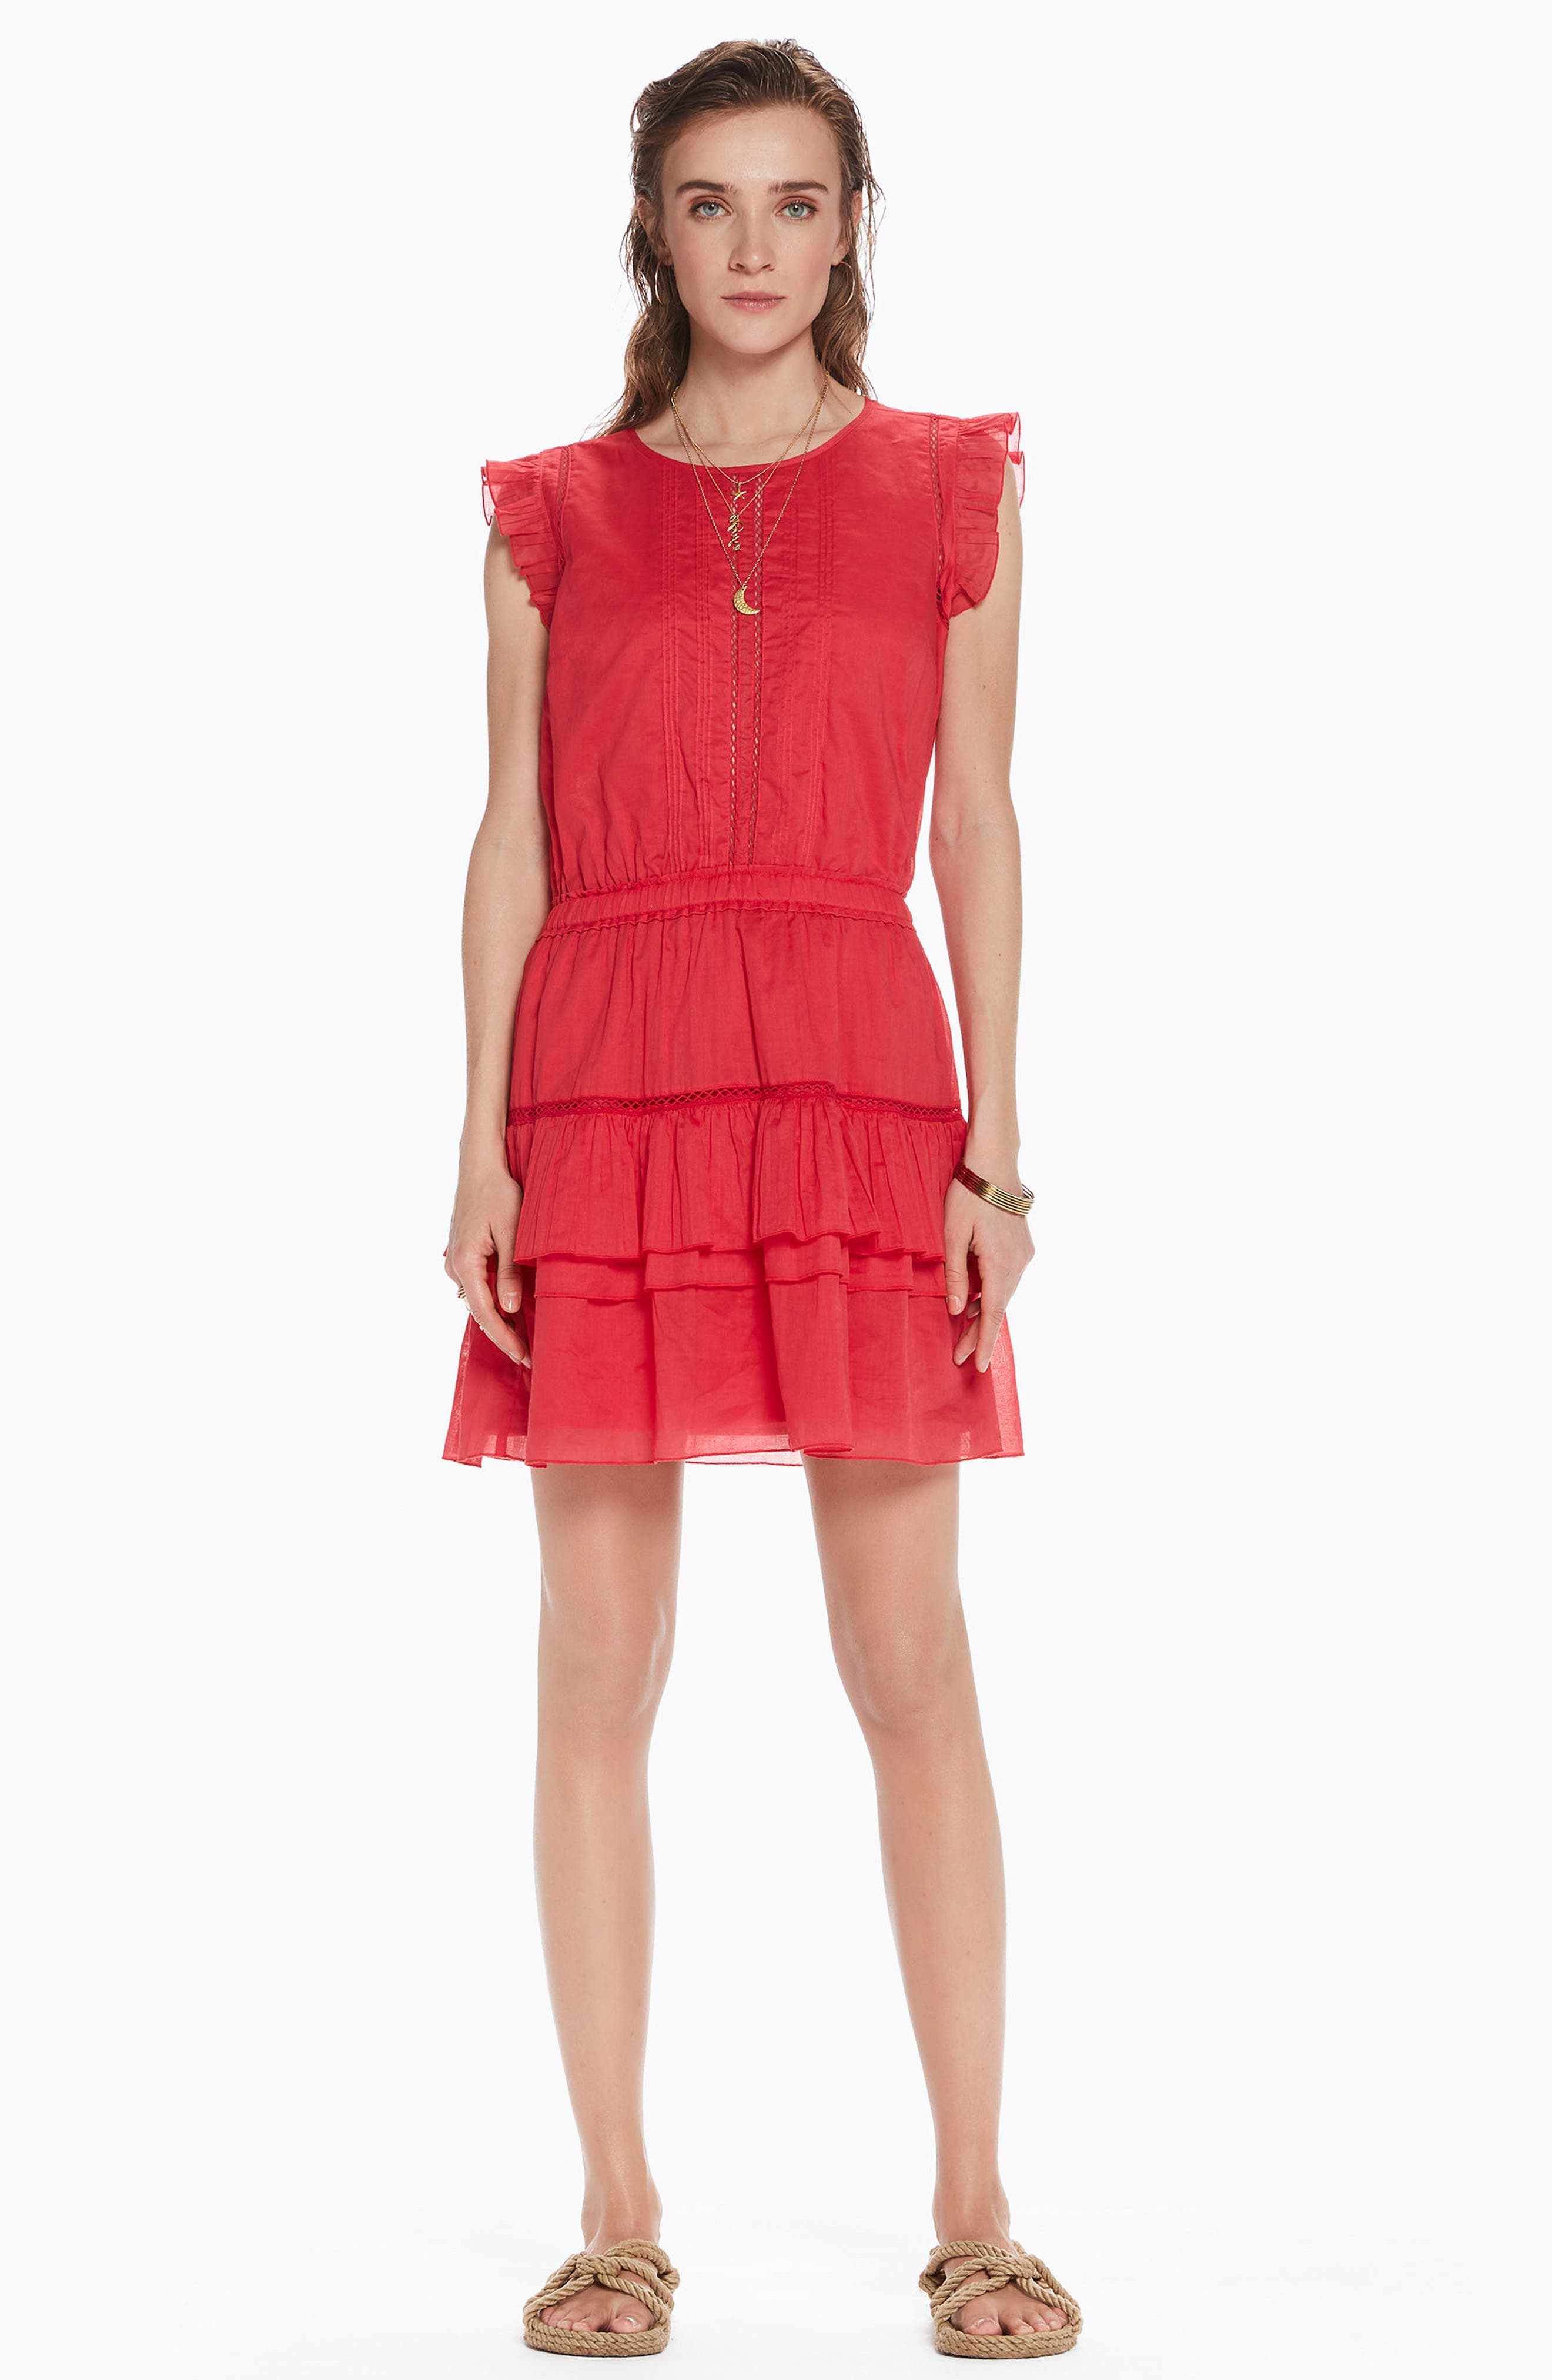 SCOTCH & SODA,                             Tiered Sleeveless Dress,                             Alternate thumbnail 7, color,                             600